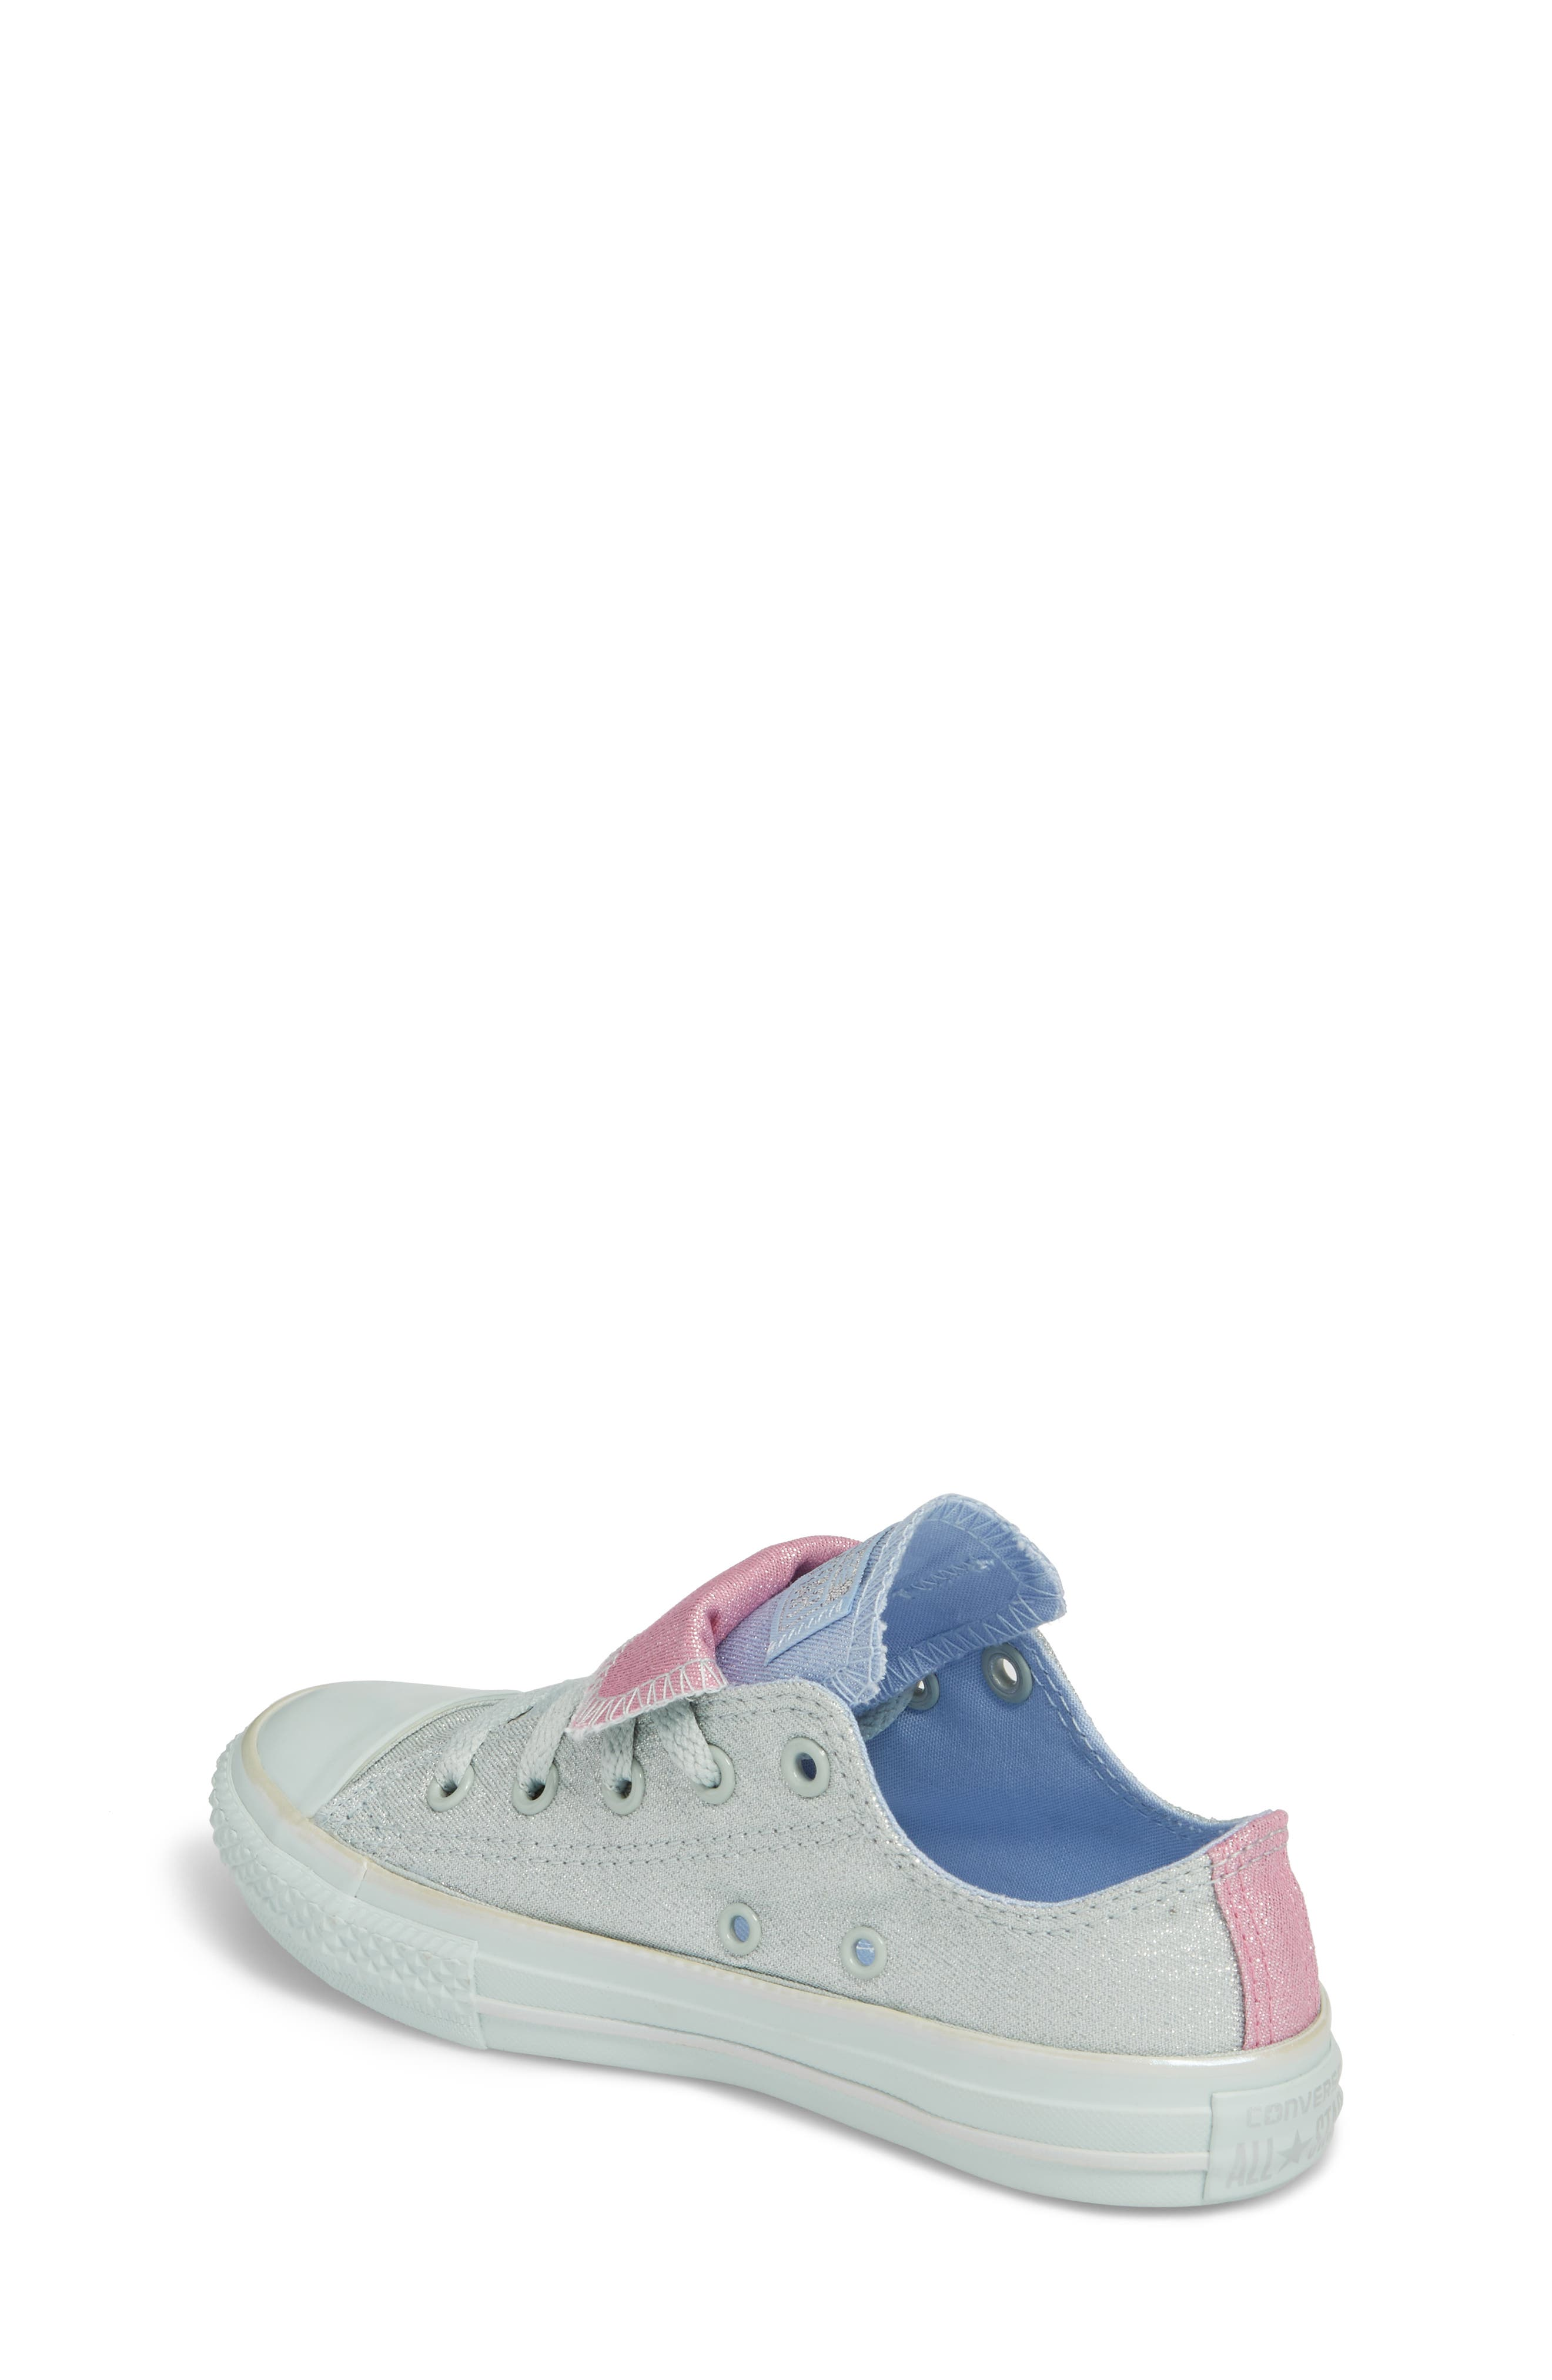 All Star<sup>®</sup> Shimmer Double Tongue Sneaker,                             Alternate thumbnail 2, color,                             301